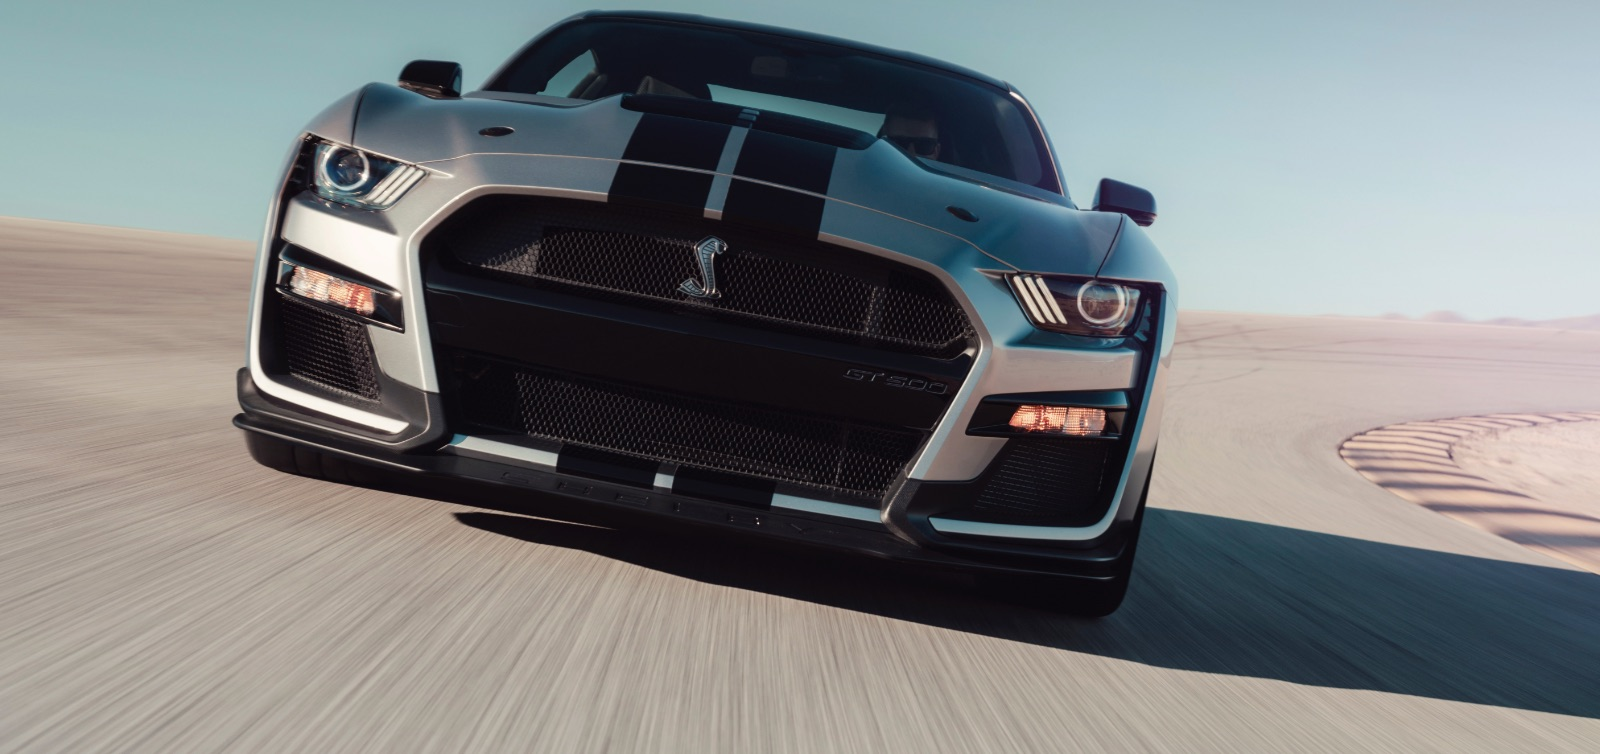 Ford Mustang Shelby GT500 (2019) vista frontale